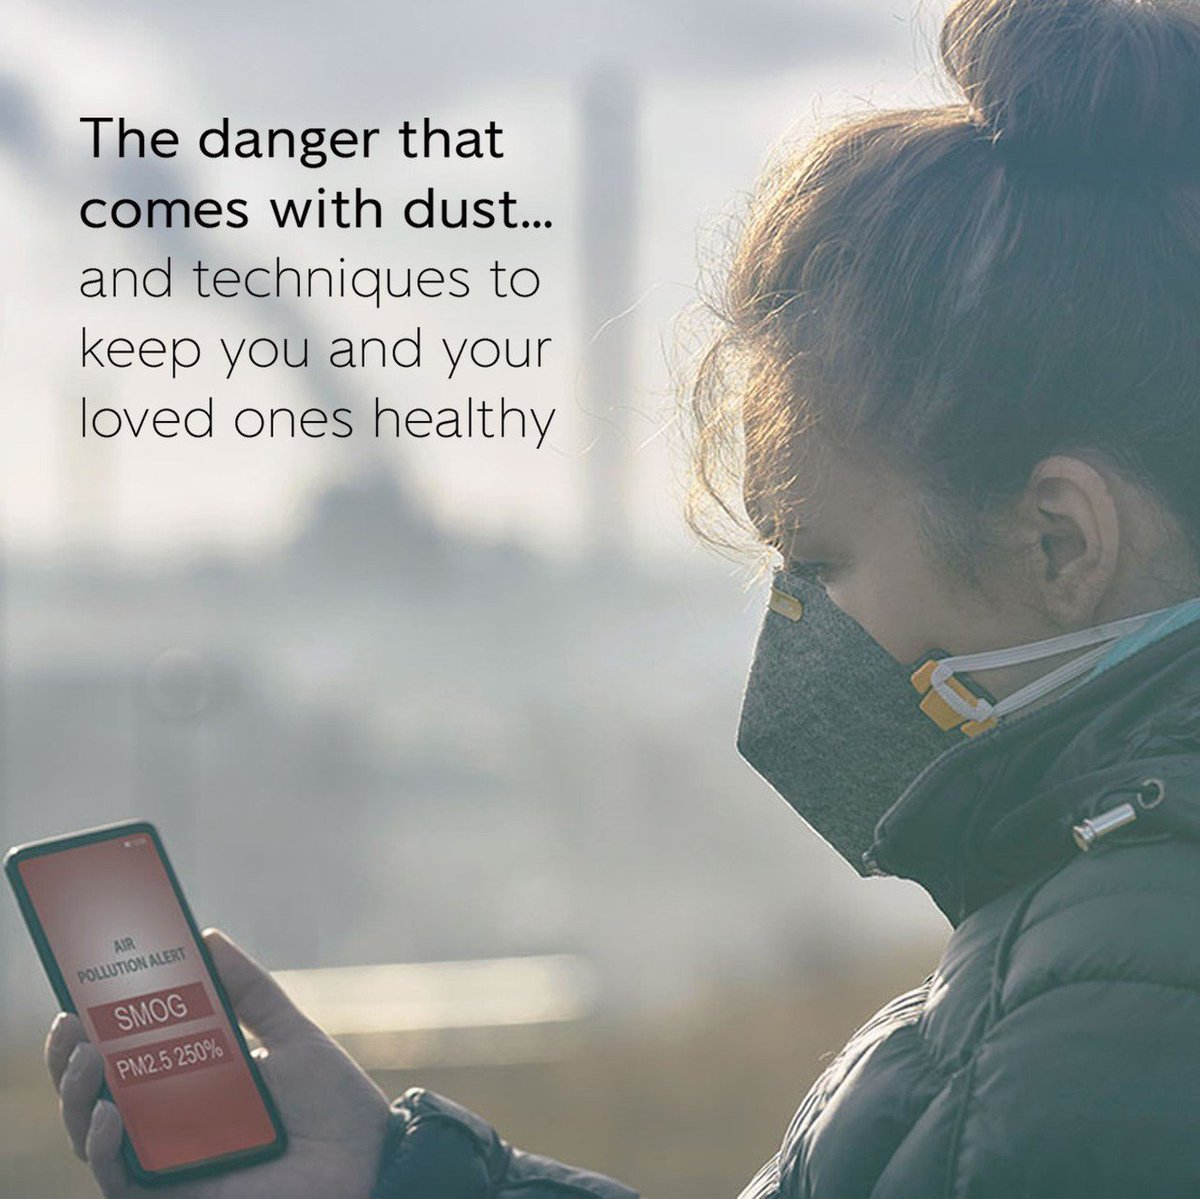 What is PM2.5...and how do we cope with this invisible threat? Find out here http://wu.to/7JkJAl #UNET #BerriesPowers #UVExpert #Sunserum #Gluta #PM2.5 #InvisibleThreat #HealthyImmunity